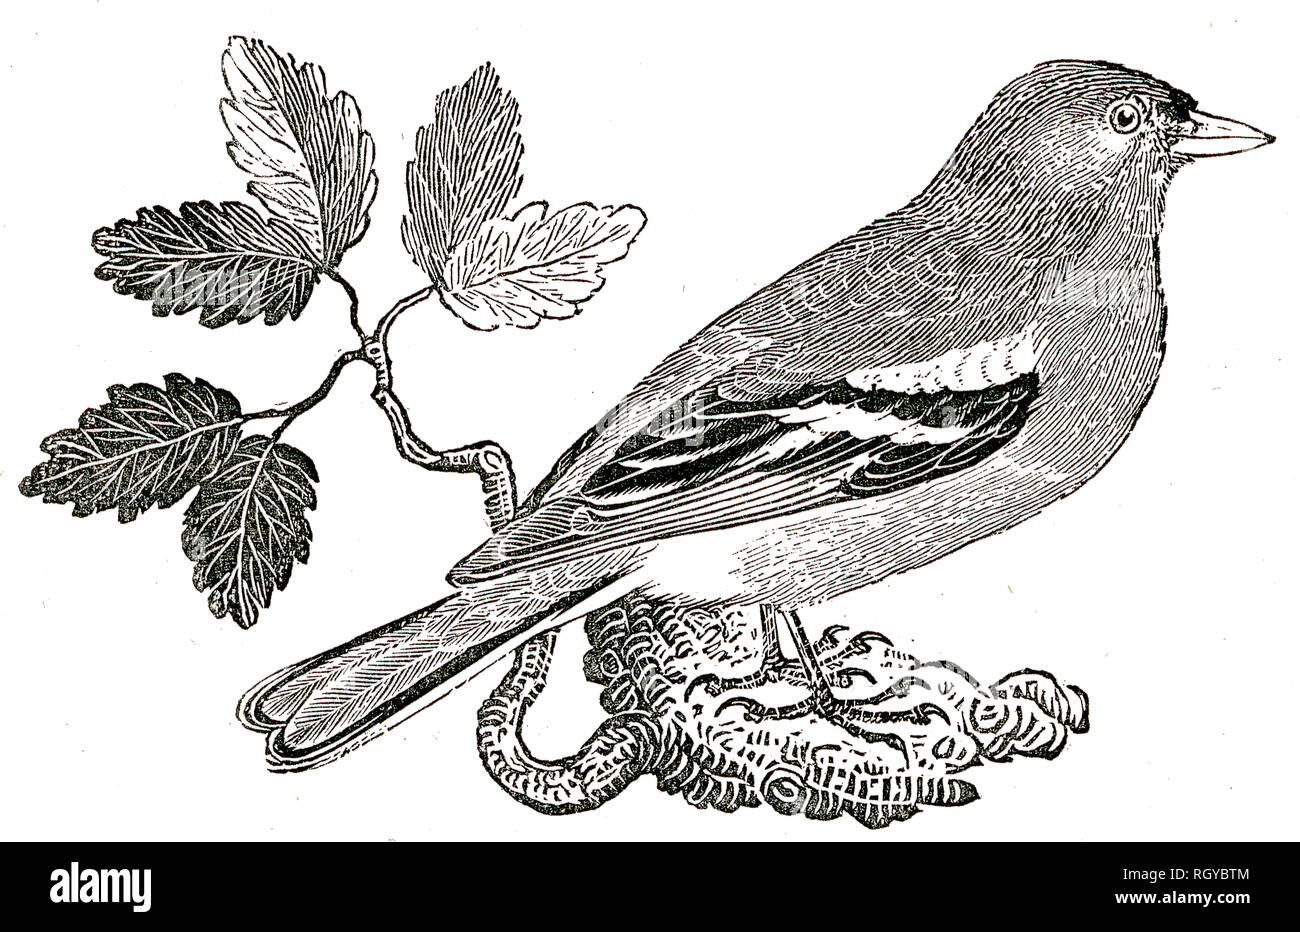 Taken From 'The Natural History of Selborne' By The Rev Gilbert White, 1875 Edition Stock Photo